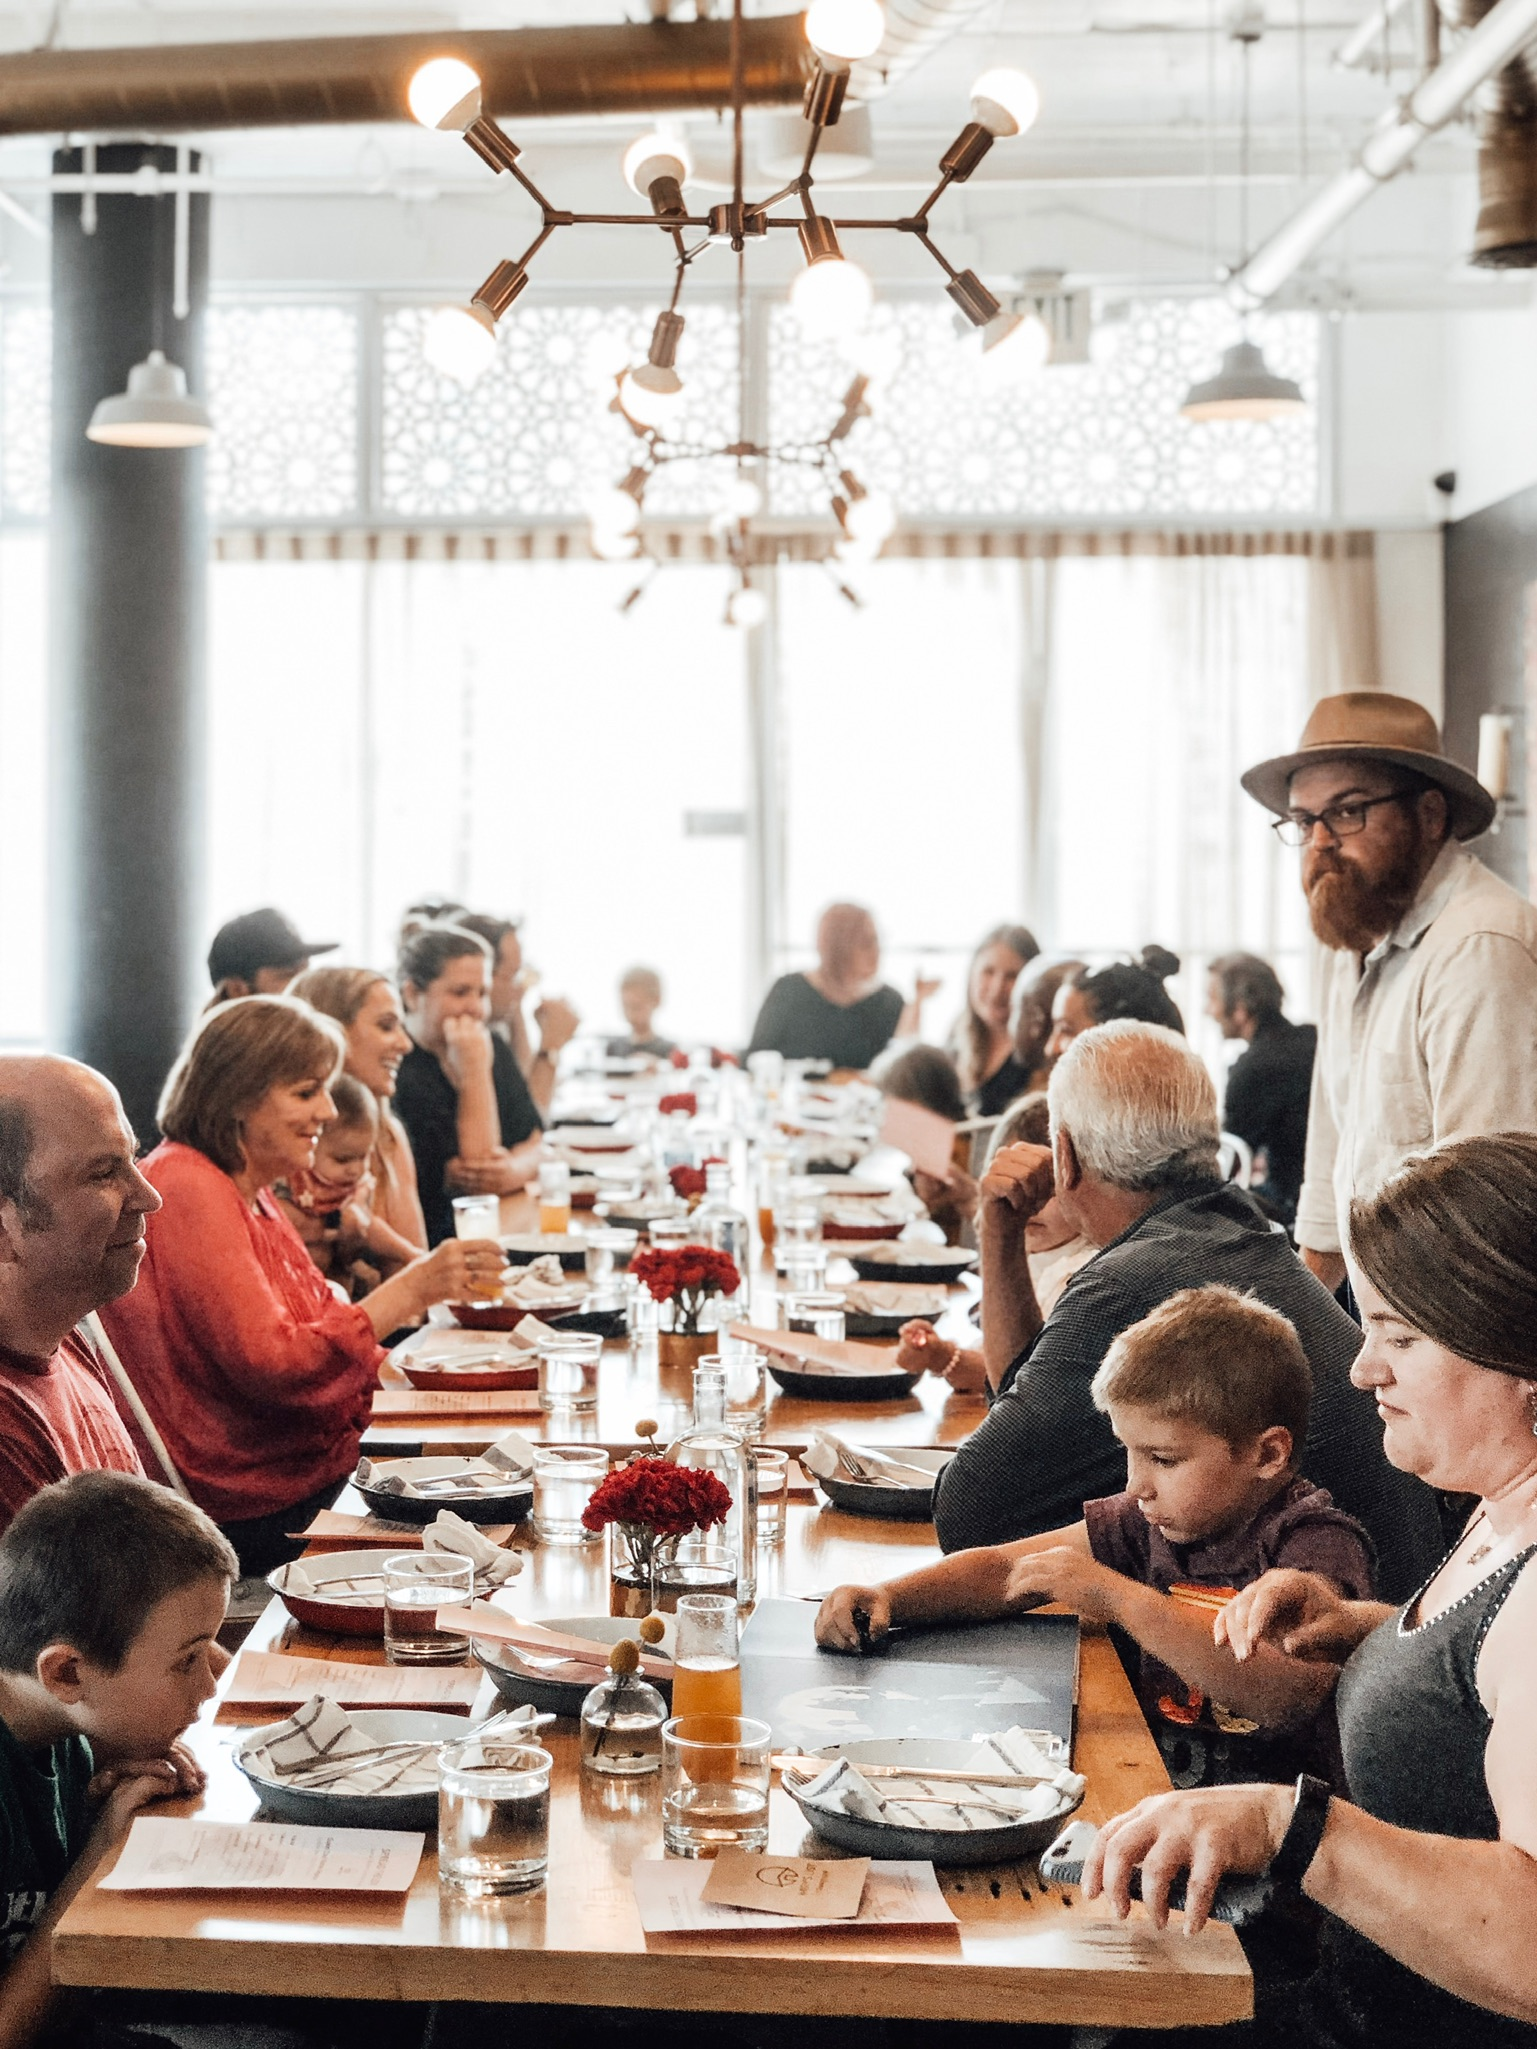 CONNECTING ANGELENOS AT THE TABLE